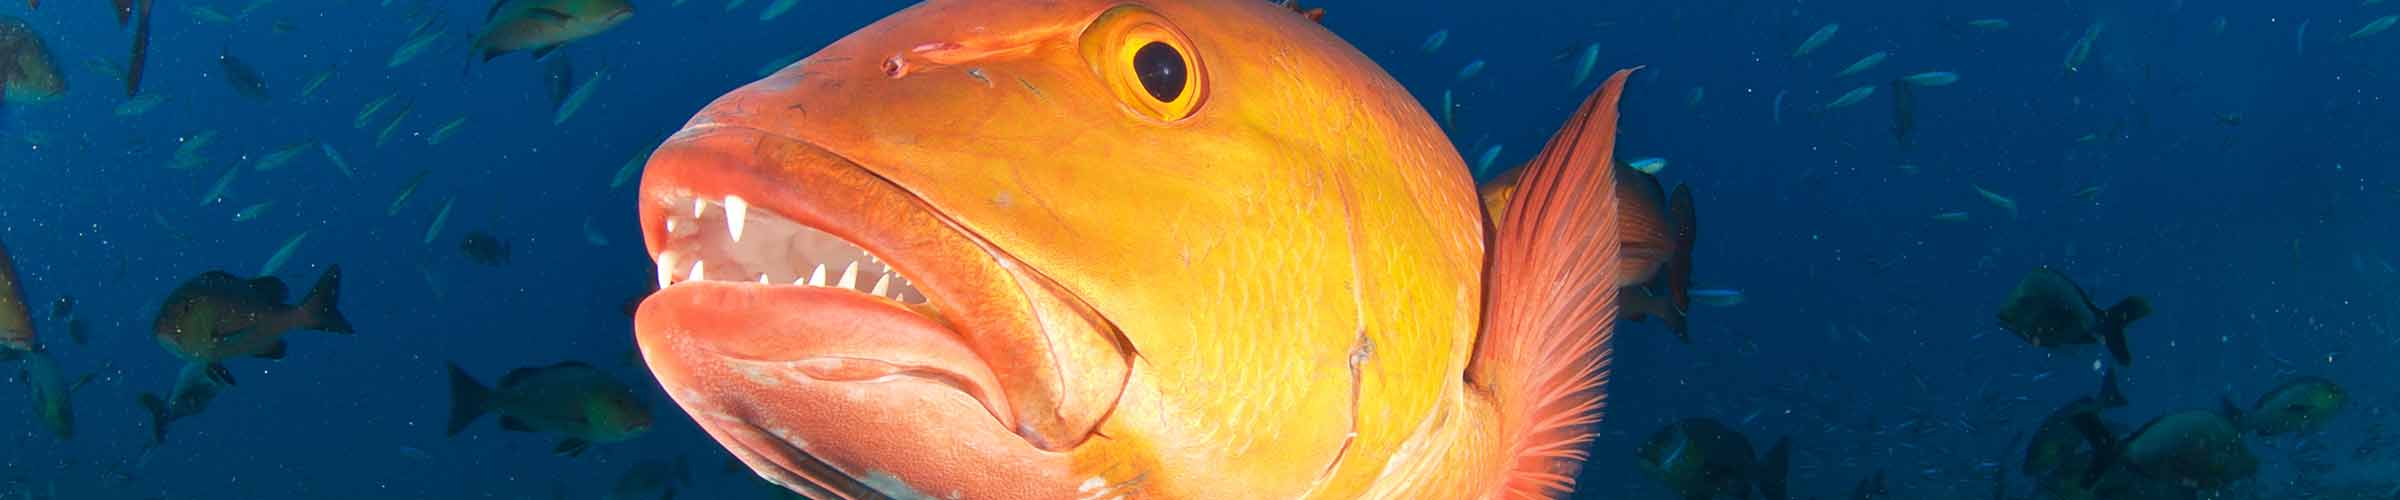 Gulf of Mexico Red Snapper